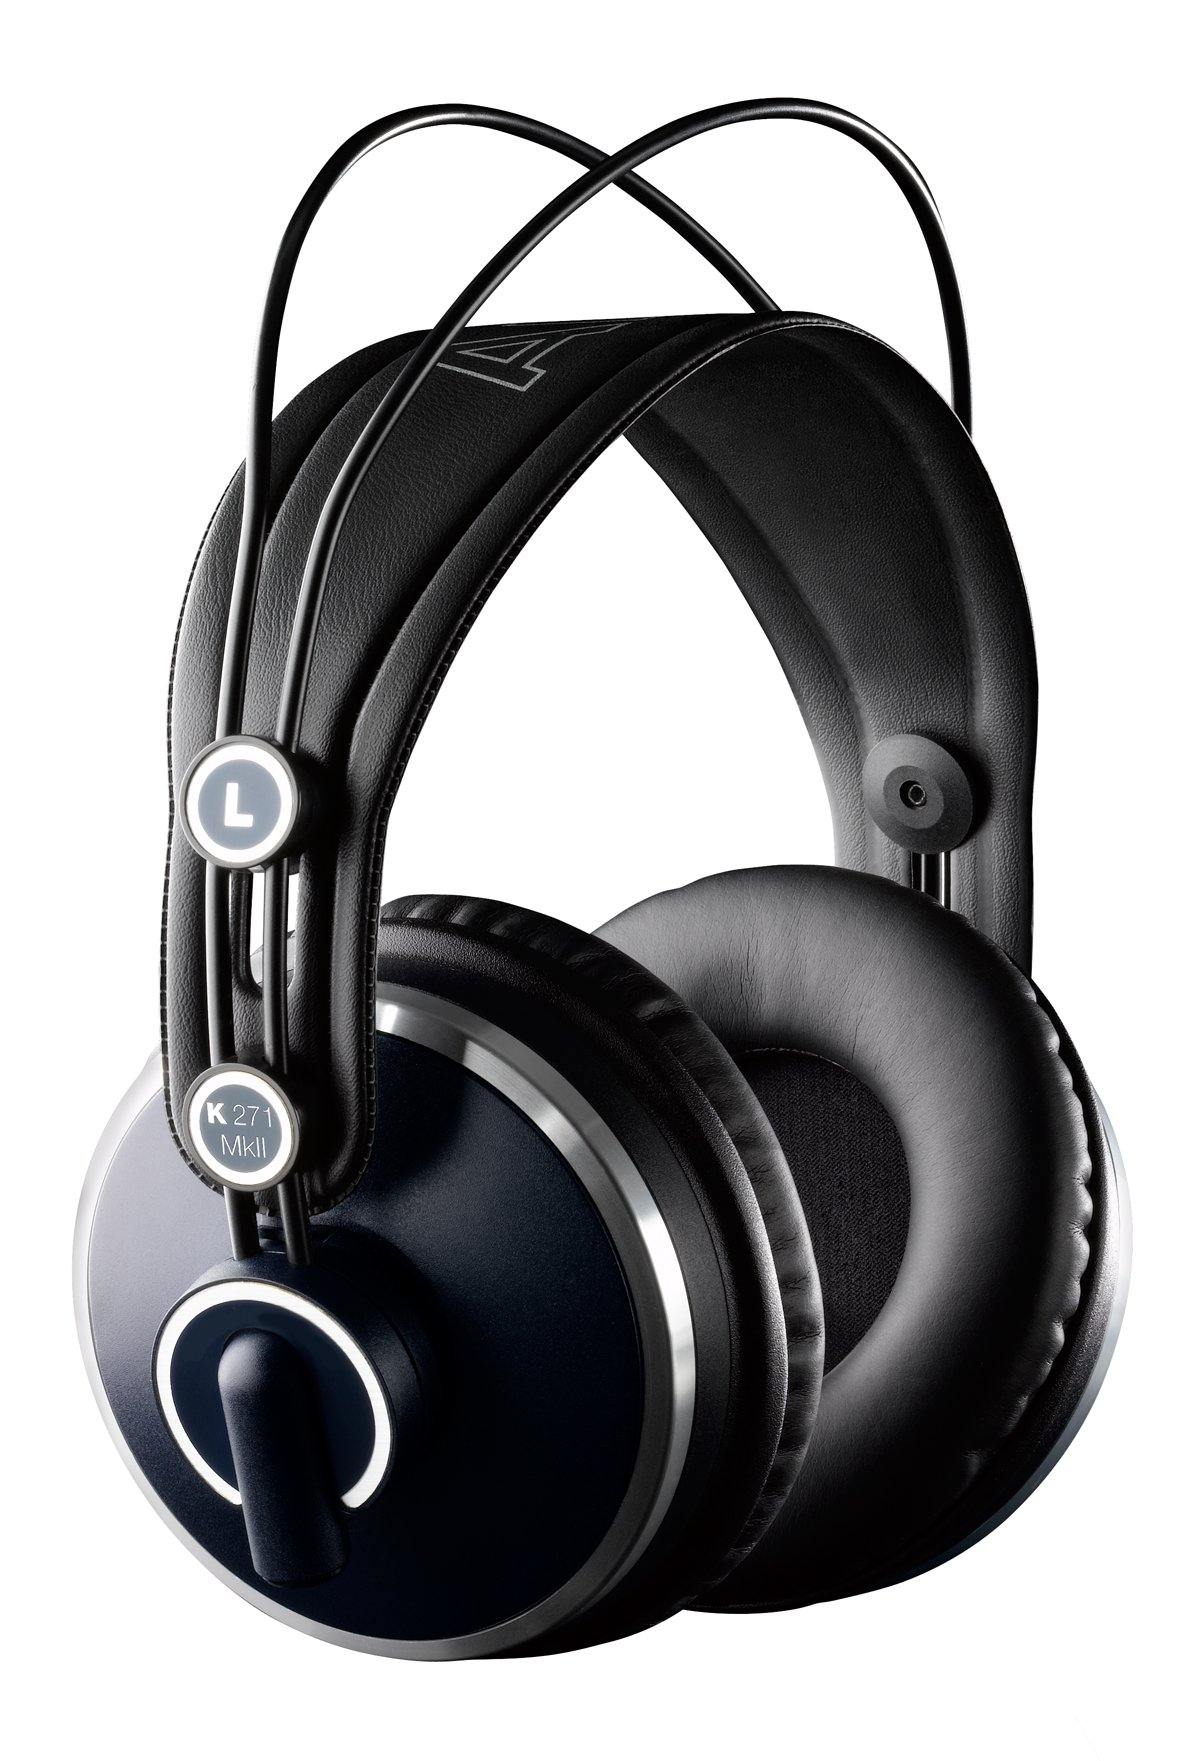 AKG Pro Audio K271 MKII Channel Studio Headphones